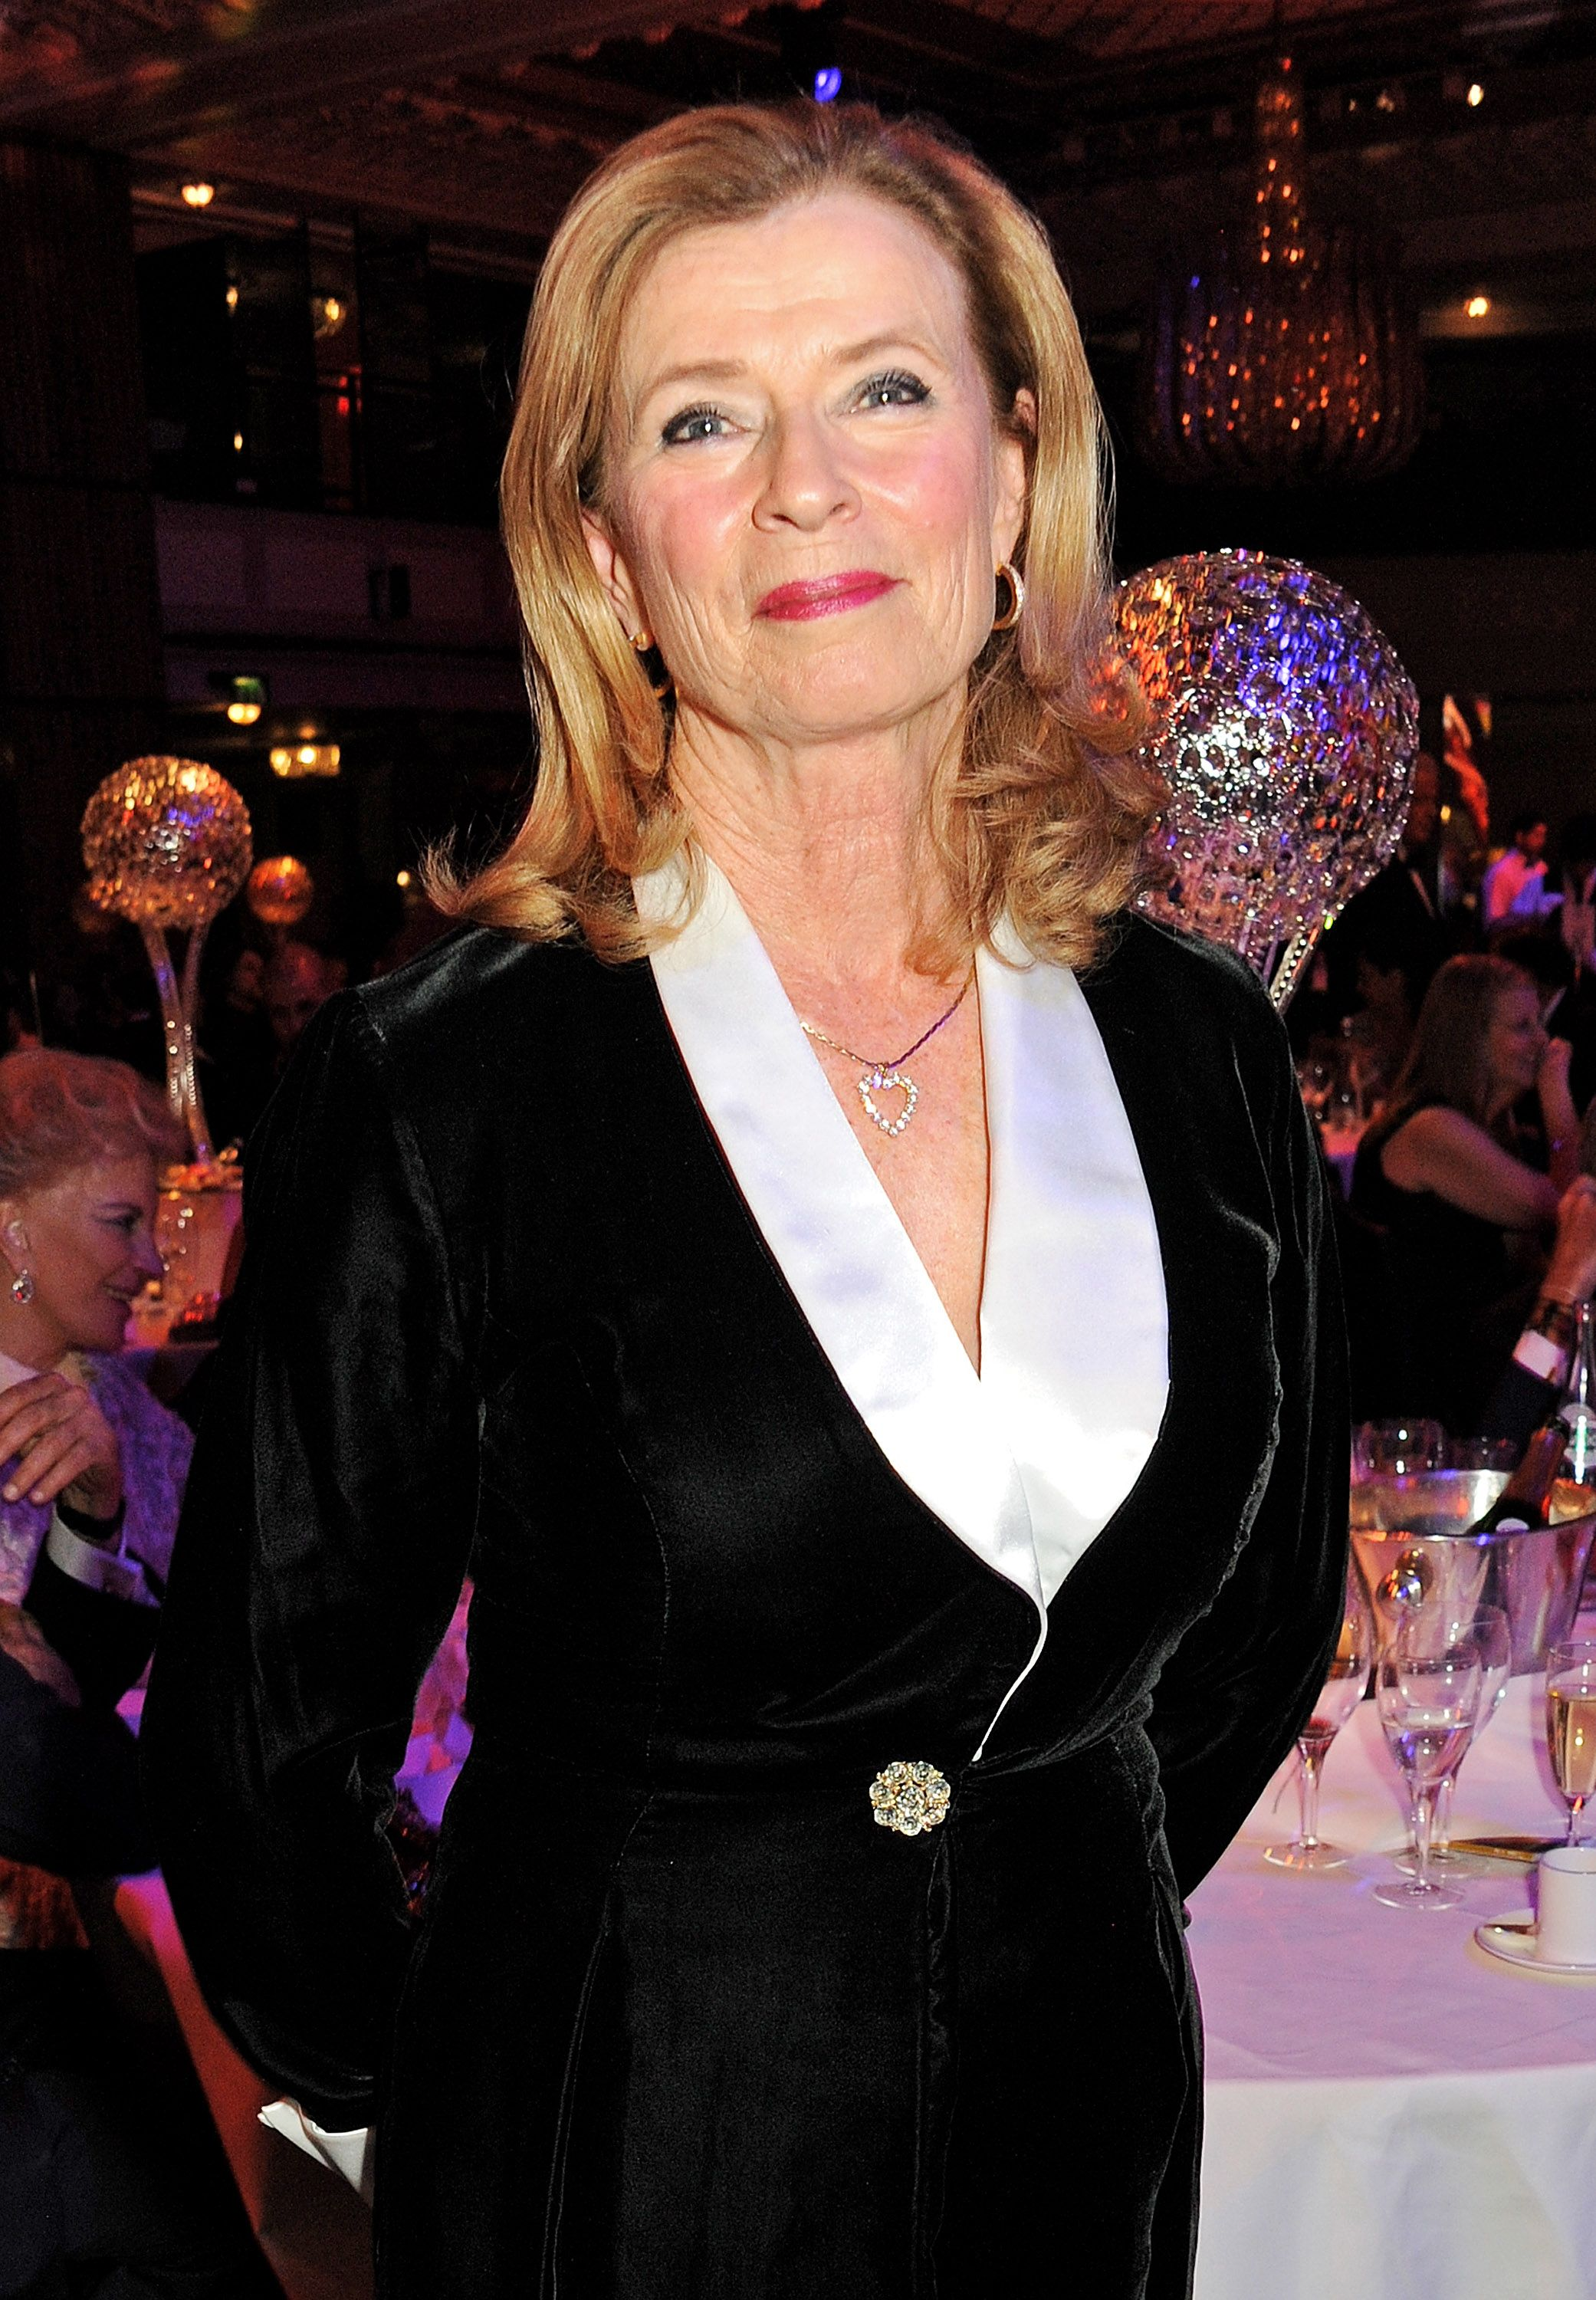 The widow of Bruce Lee, Linda Lee Cadwell, at The Asian Awards in 2013 in London | Source: Getty Images